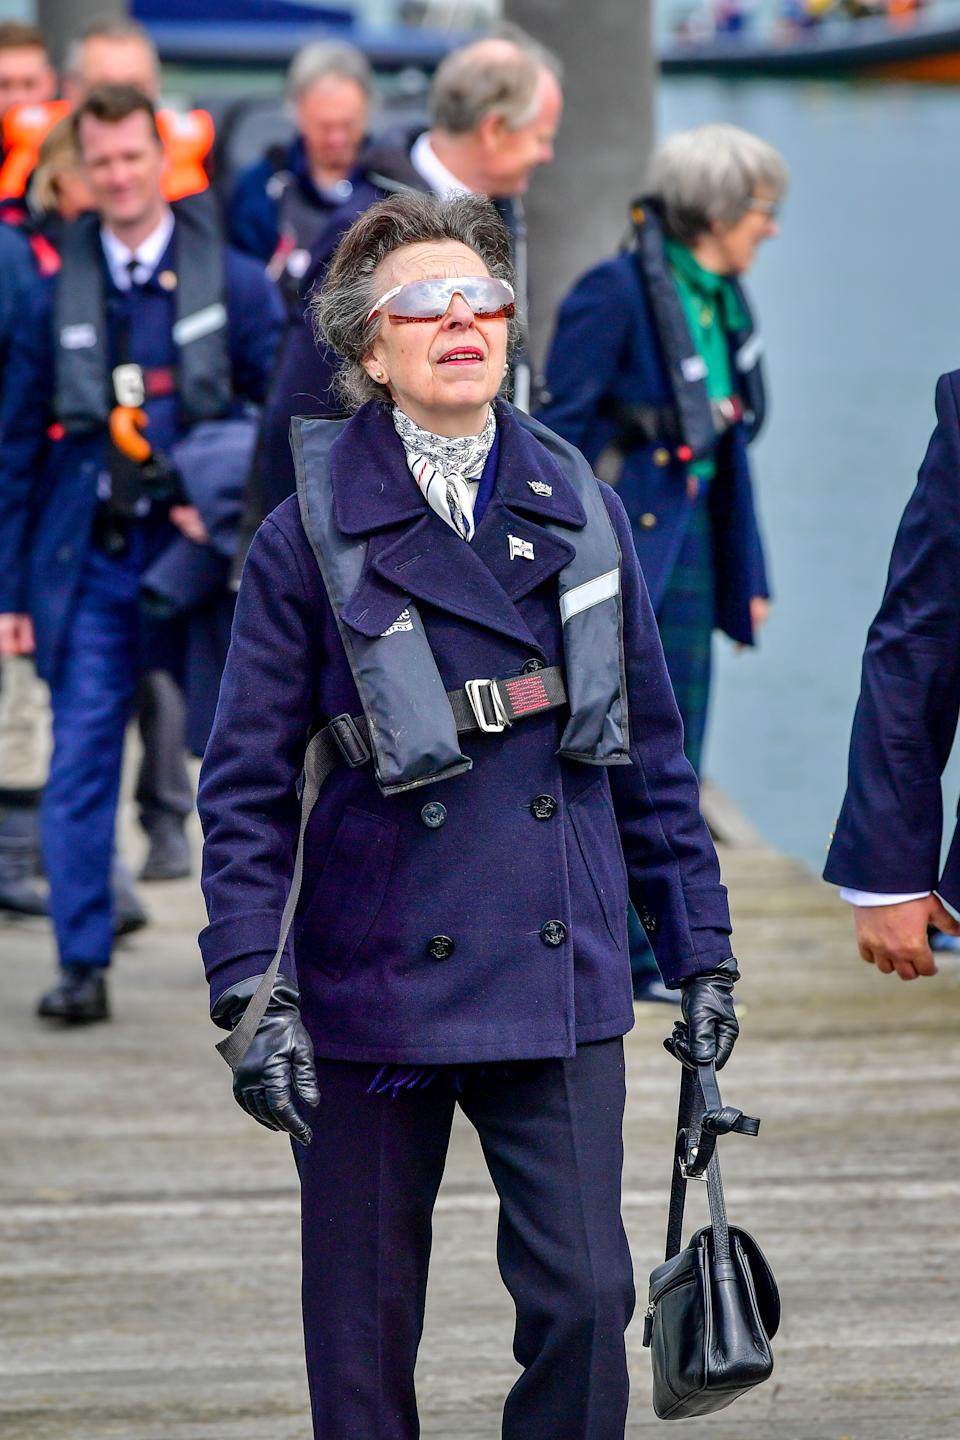 The Princess Royal arrives at the Royal Victoria Yacht Club, on the Isle of Wight. Picture date: Wednesday April 14, 2021.